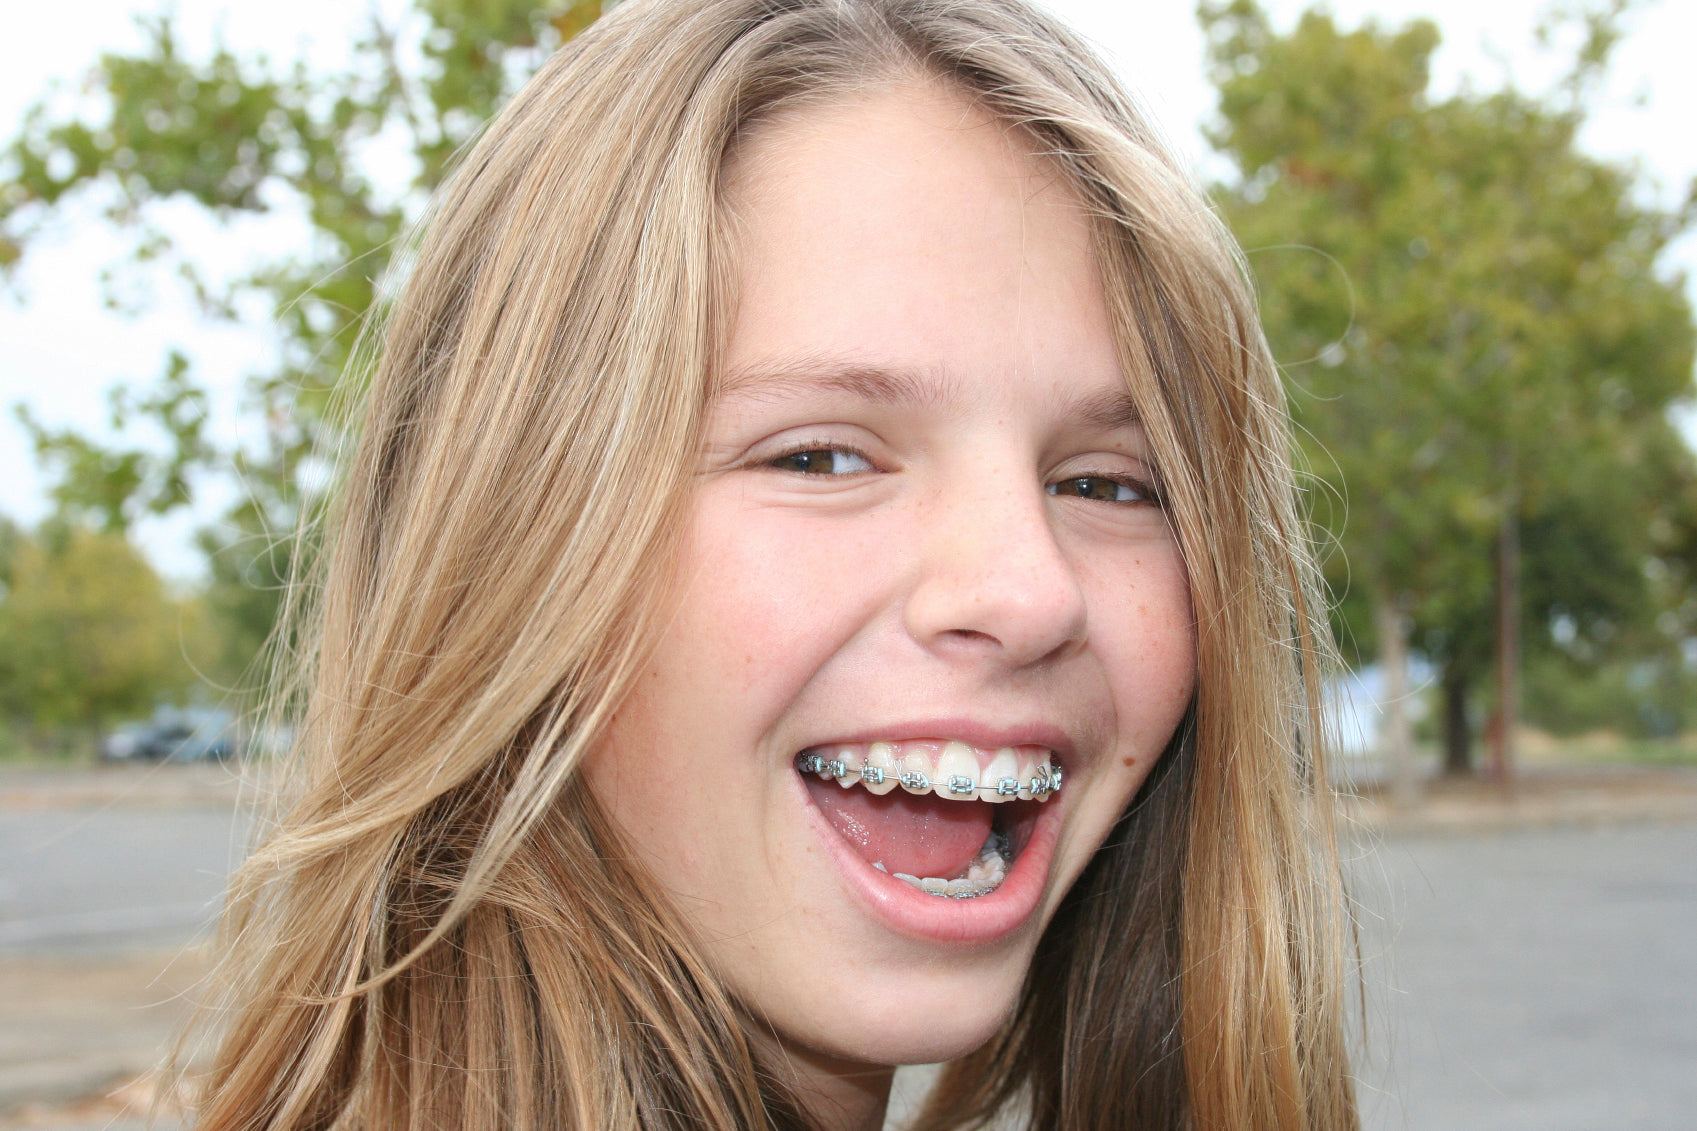 Top tips for when you first get dental braces